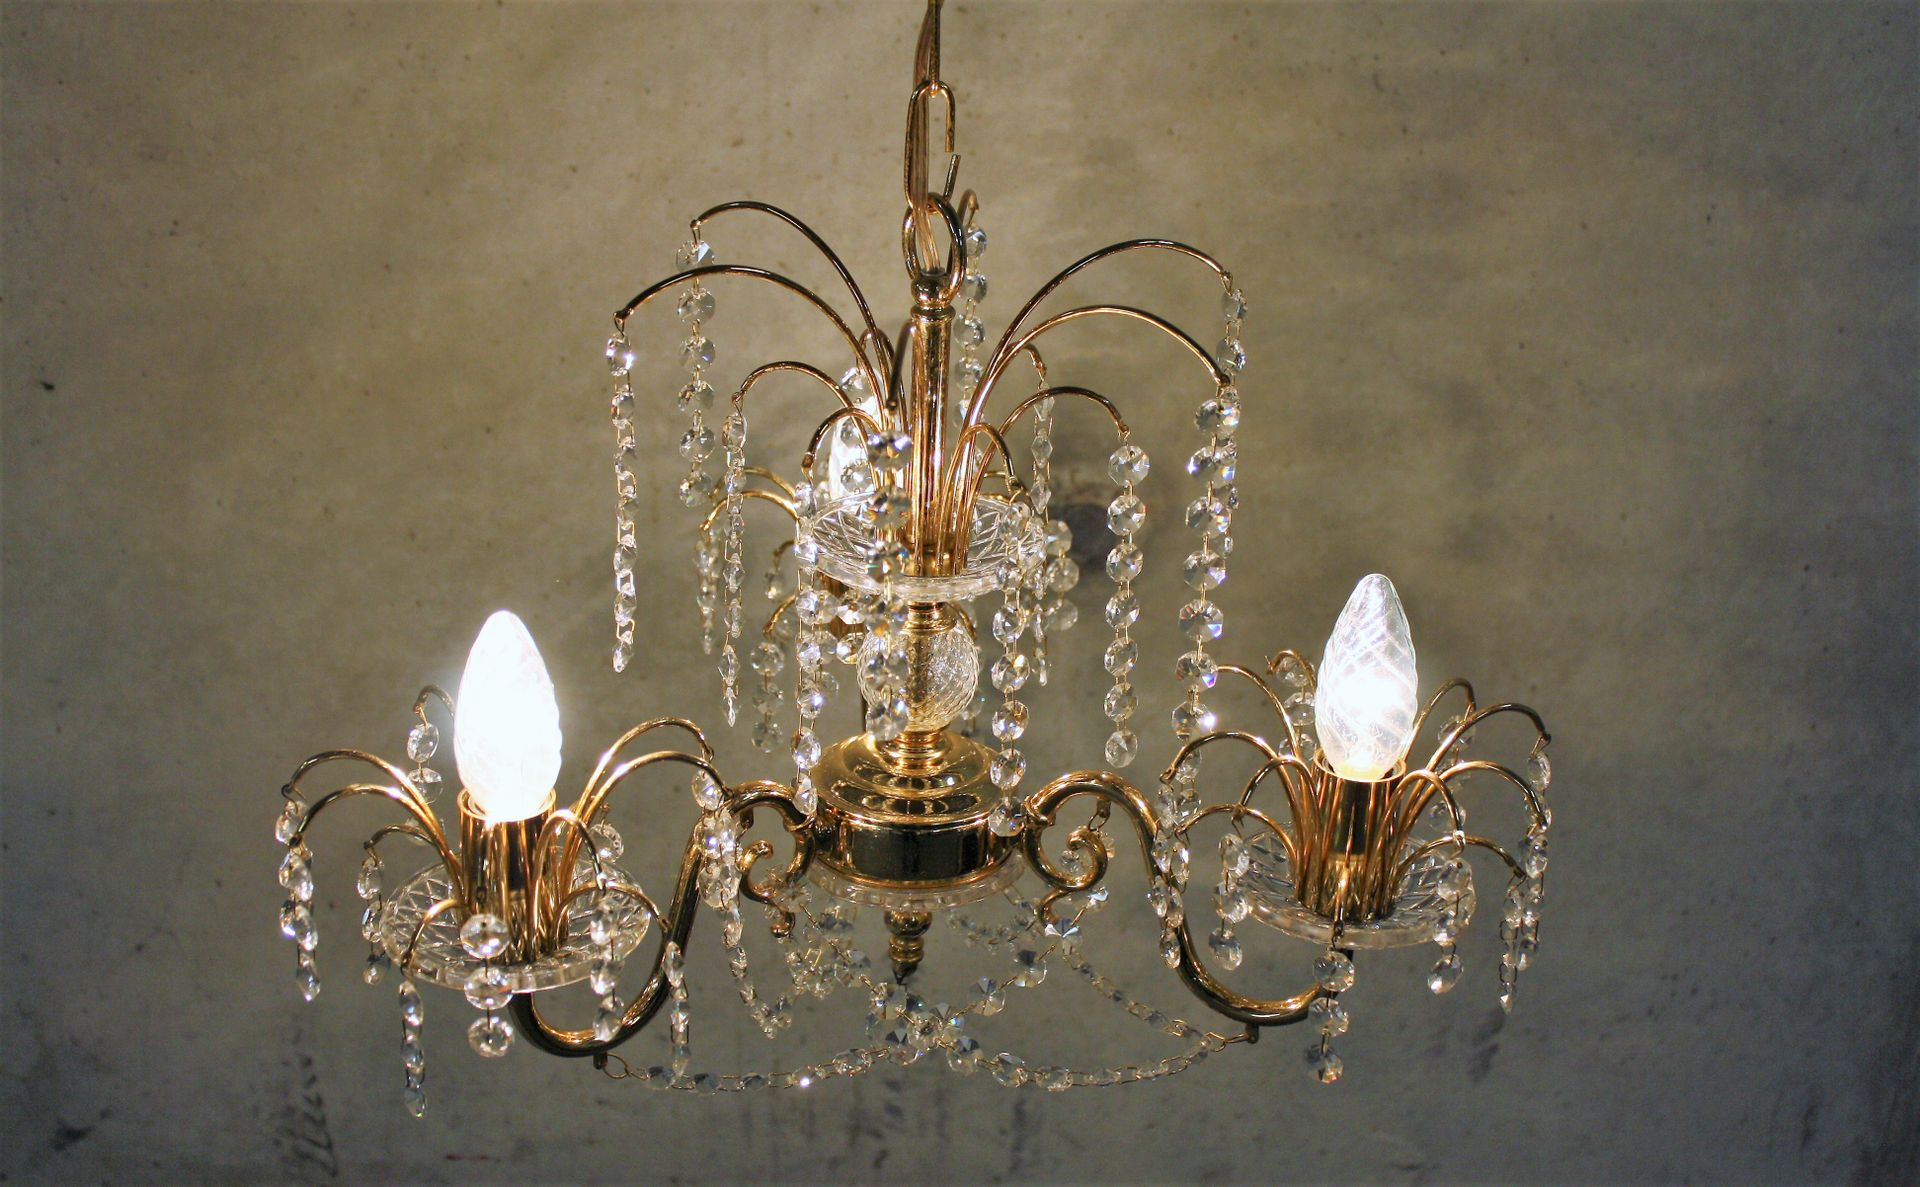 Vintage Brass Crystal Chandelier 1970s for sale at Pamono